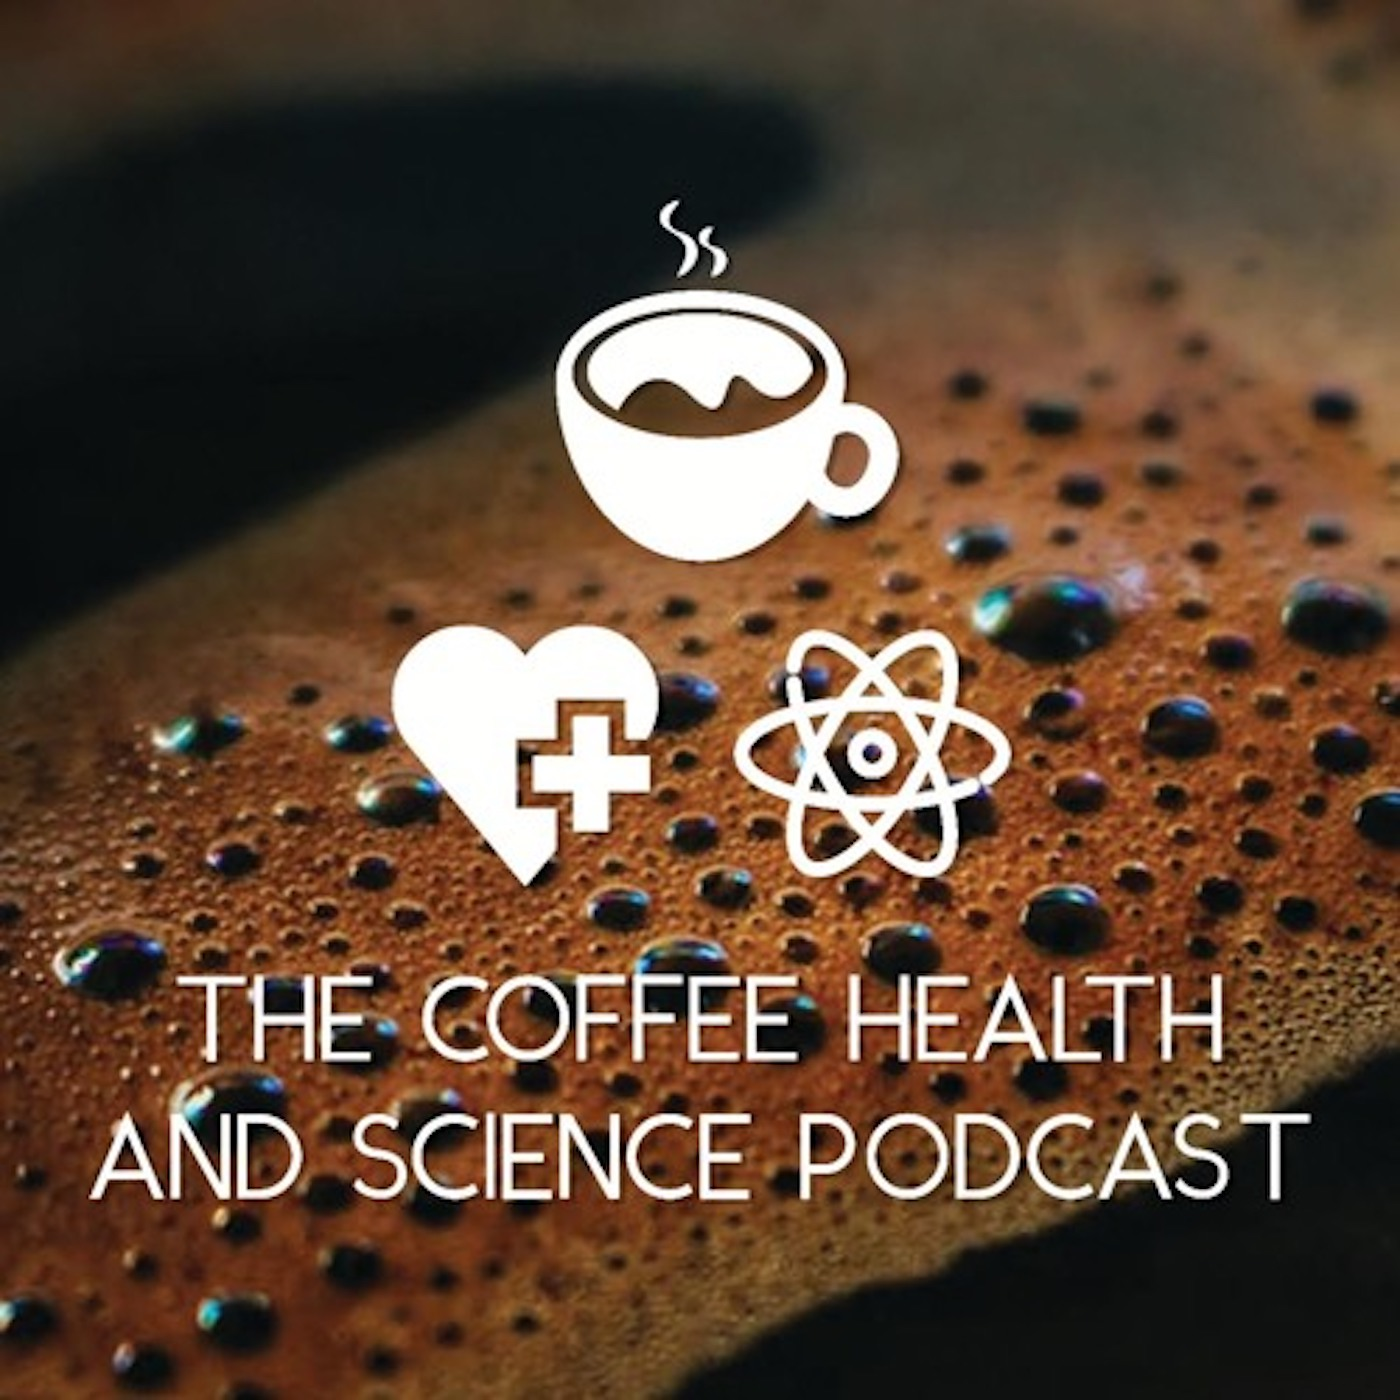 Pesticides, Molds, and Toxins in Coffee, with Doctor Coffee